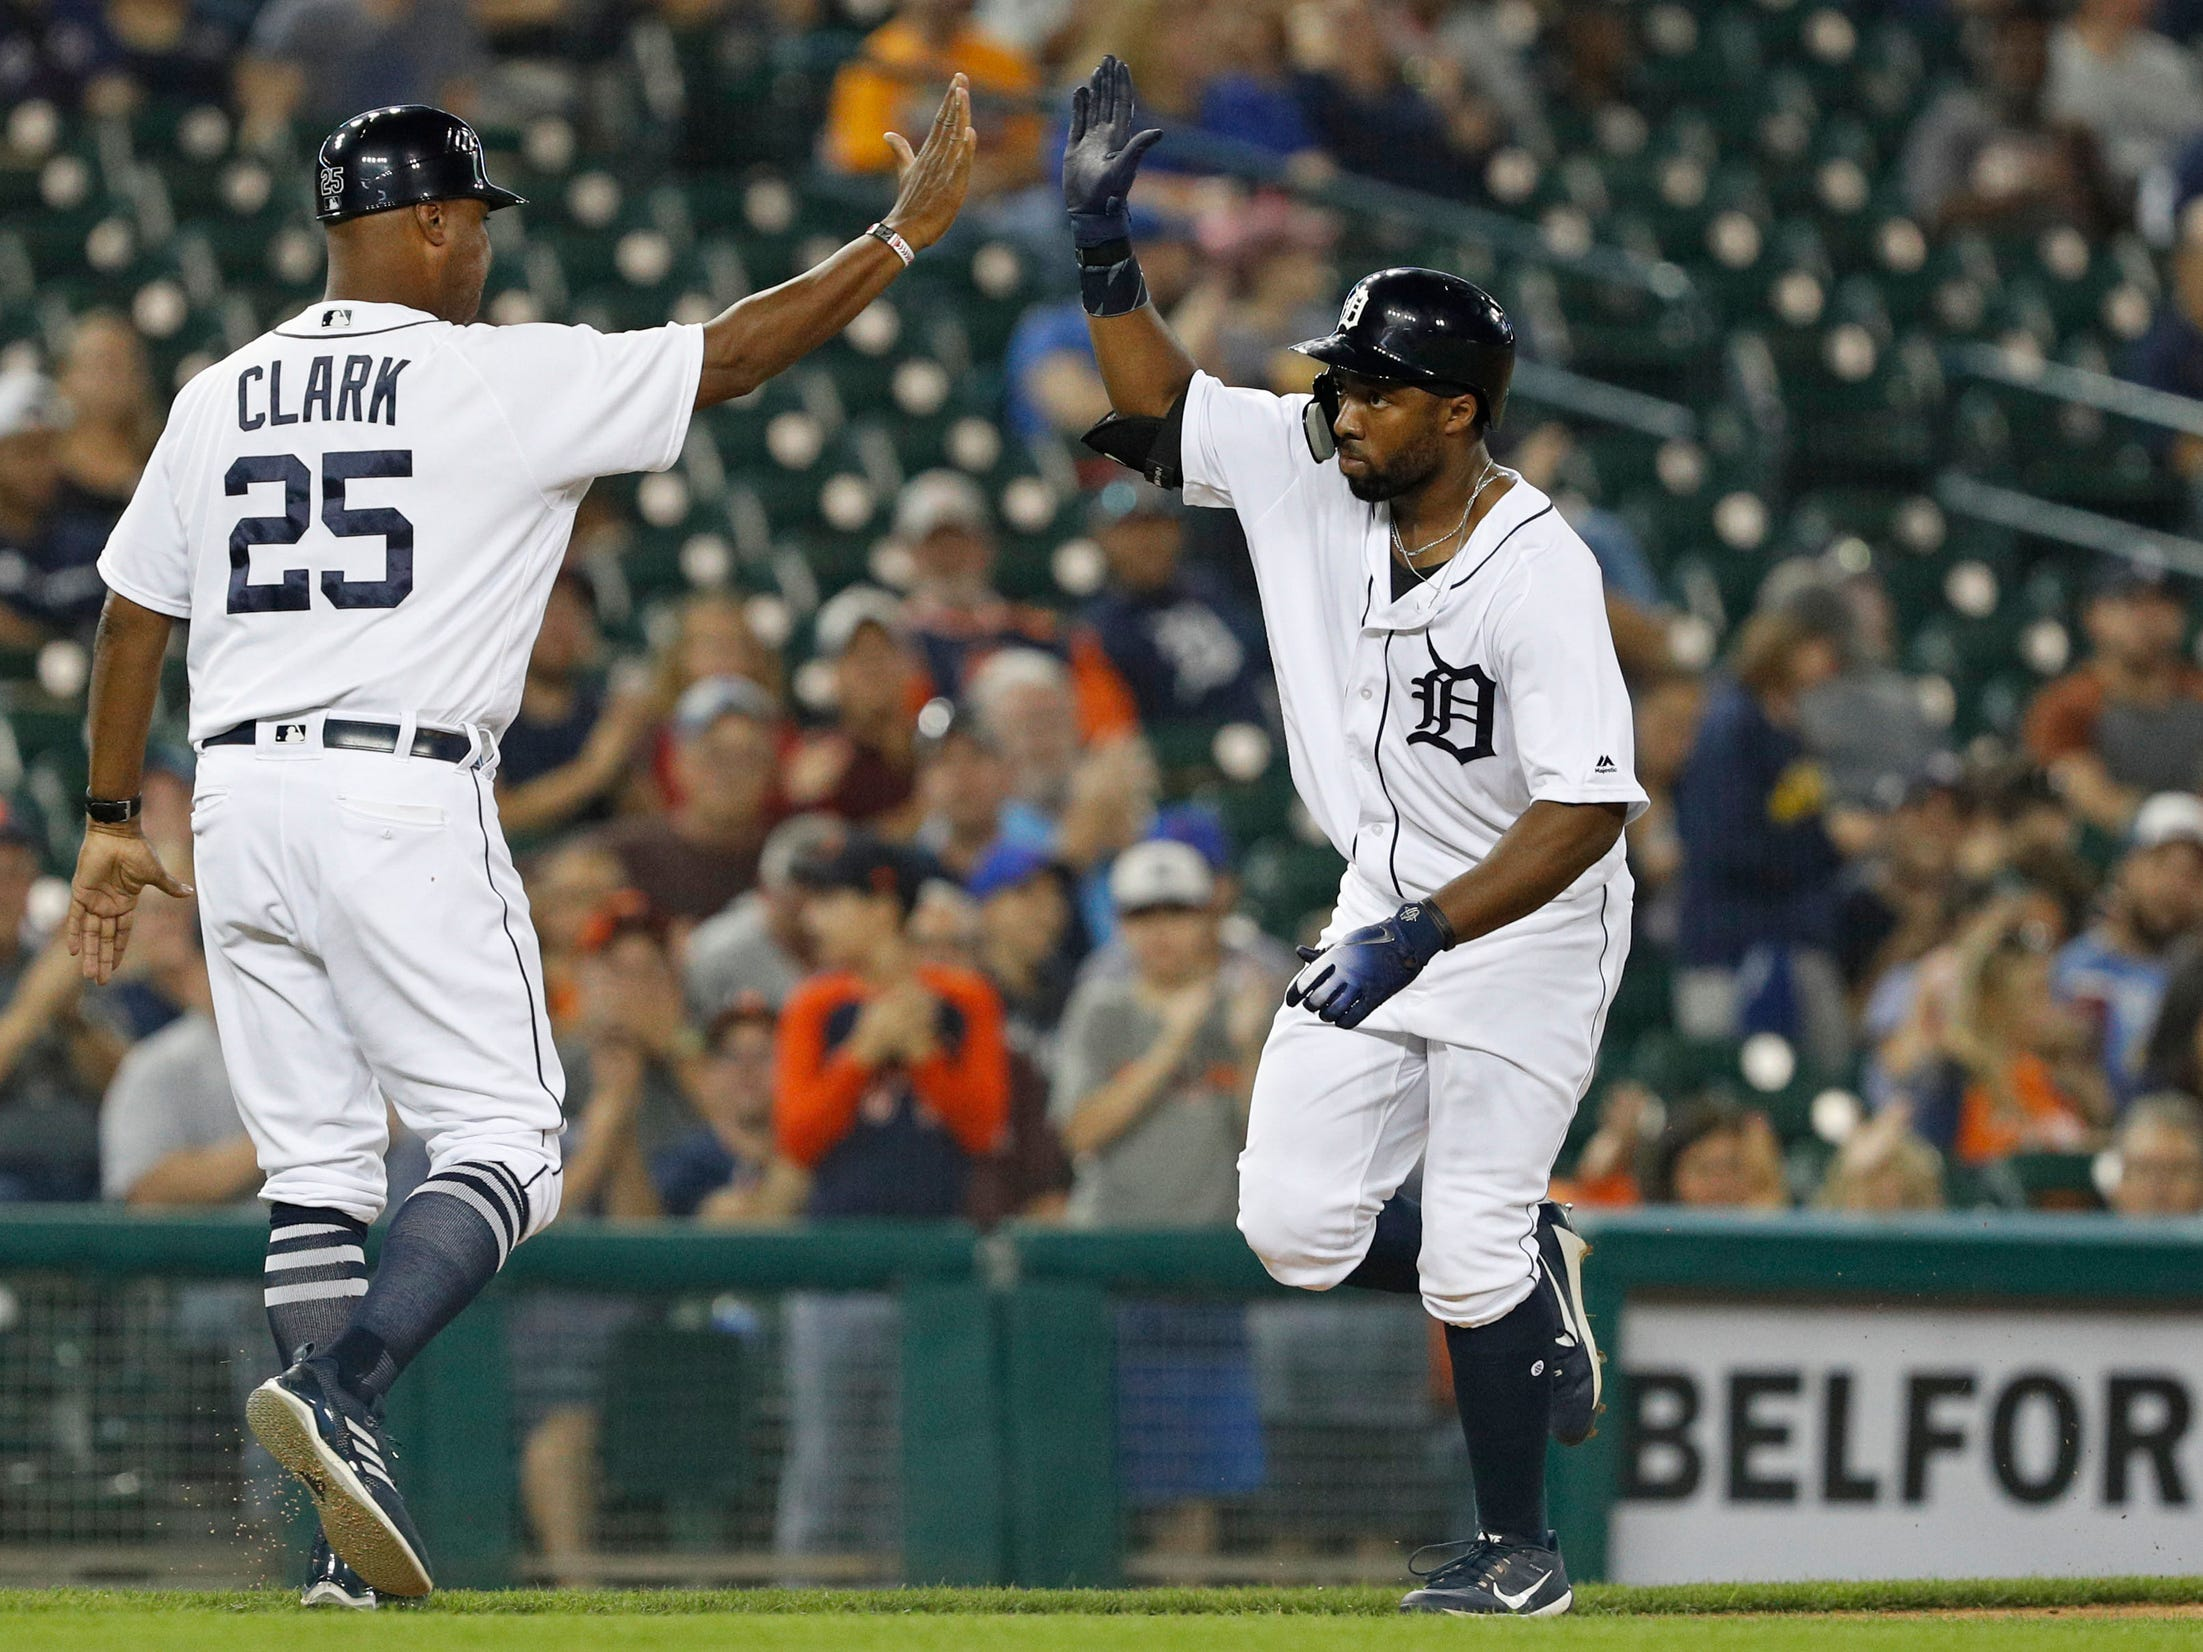 Detroit Tigers left fielder Christin Stewart high-fives third base coach Dave Clark after hitting a three-run home run in the second inning against the Kansas City Royals at Comerica Park on Thursday, Sept. 20, 2018, in Detroit.